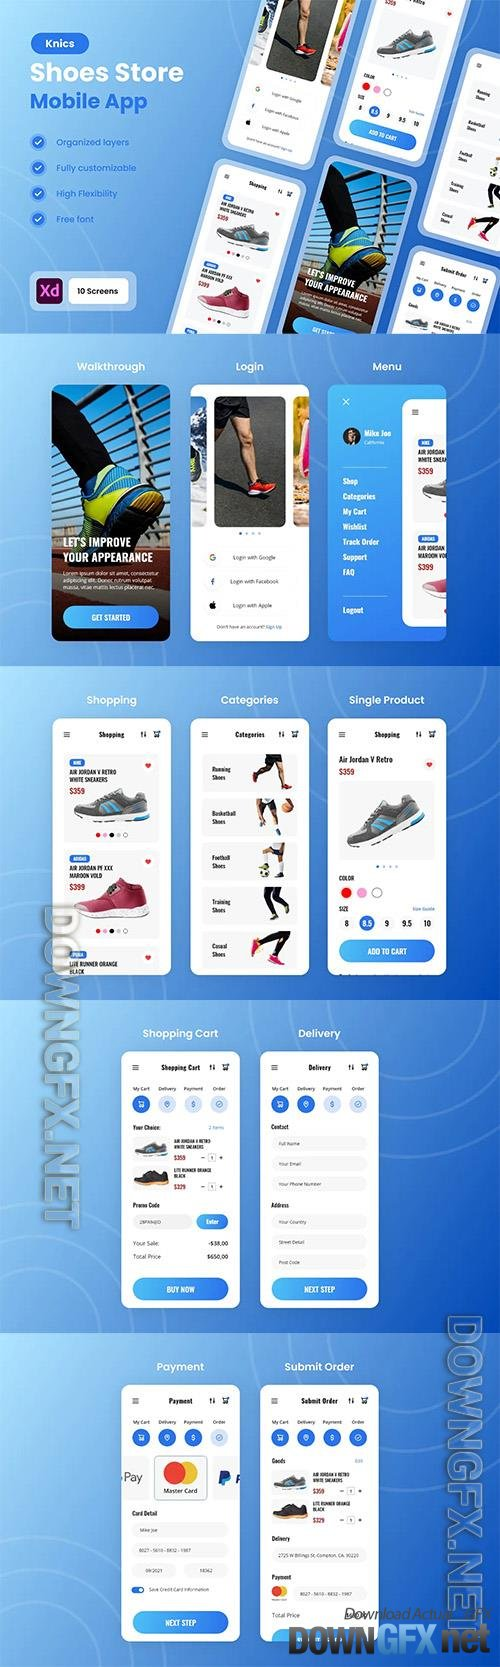 Knic - Shoes & Sneakers Store Mobile App UI Kit